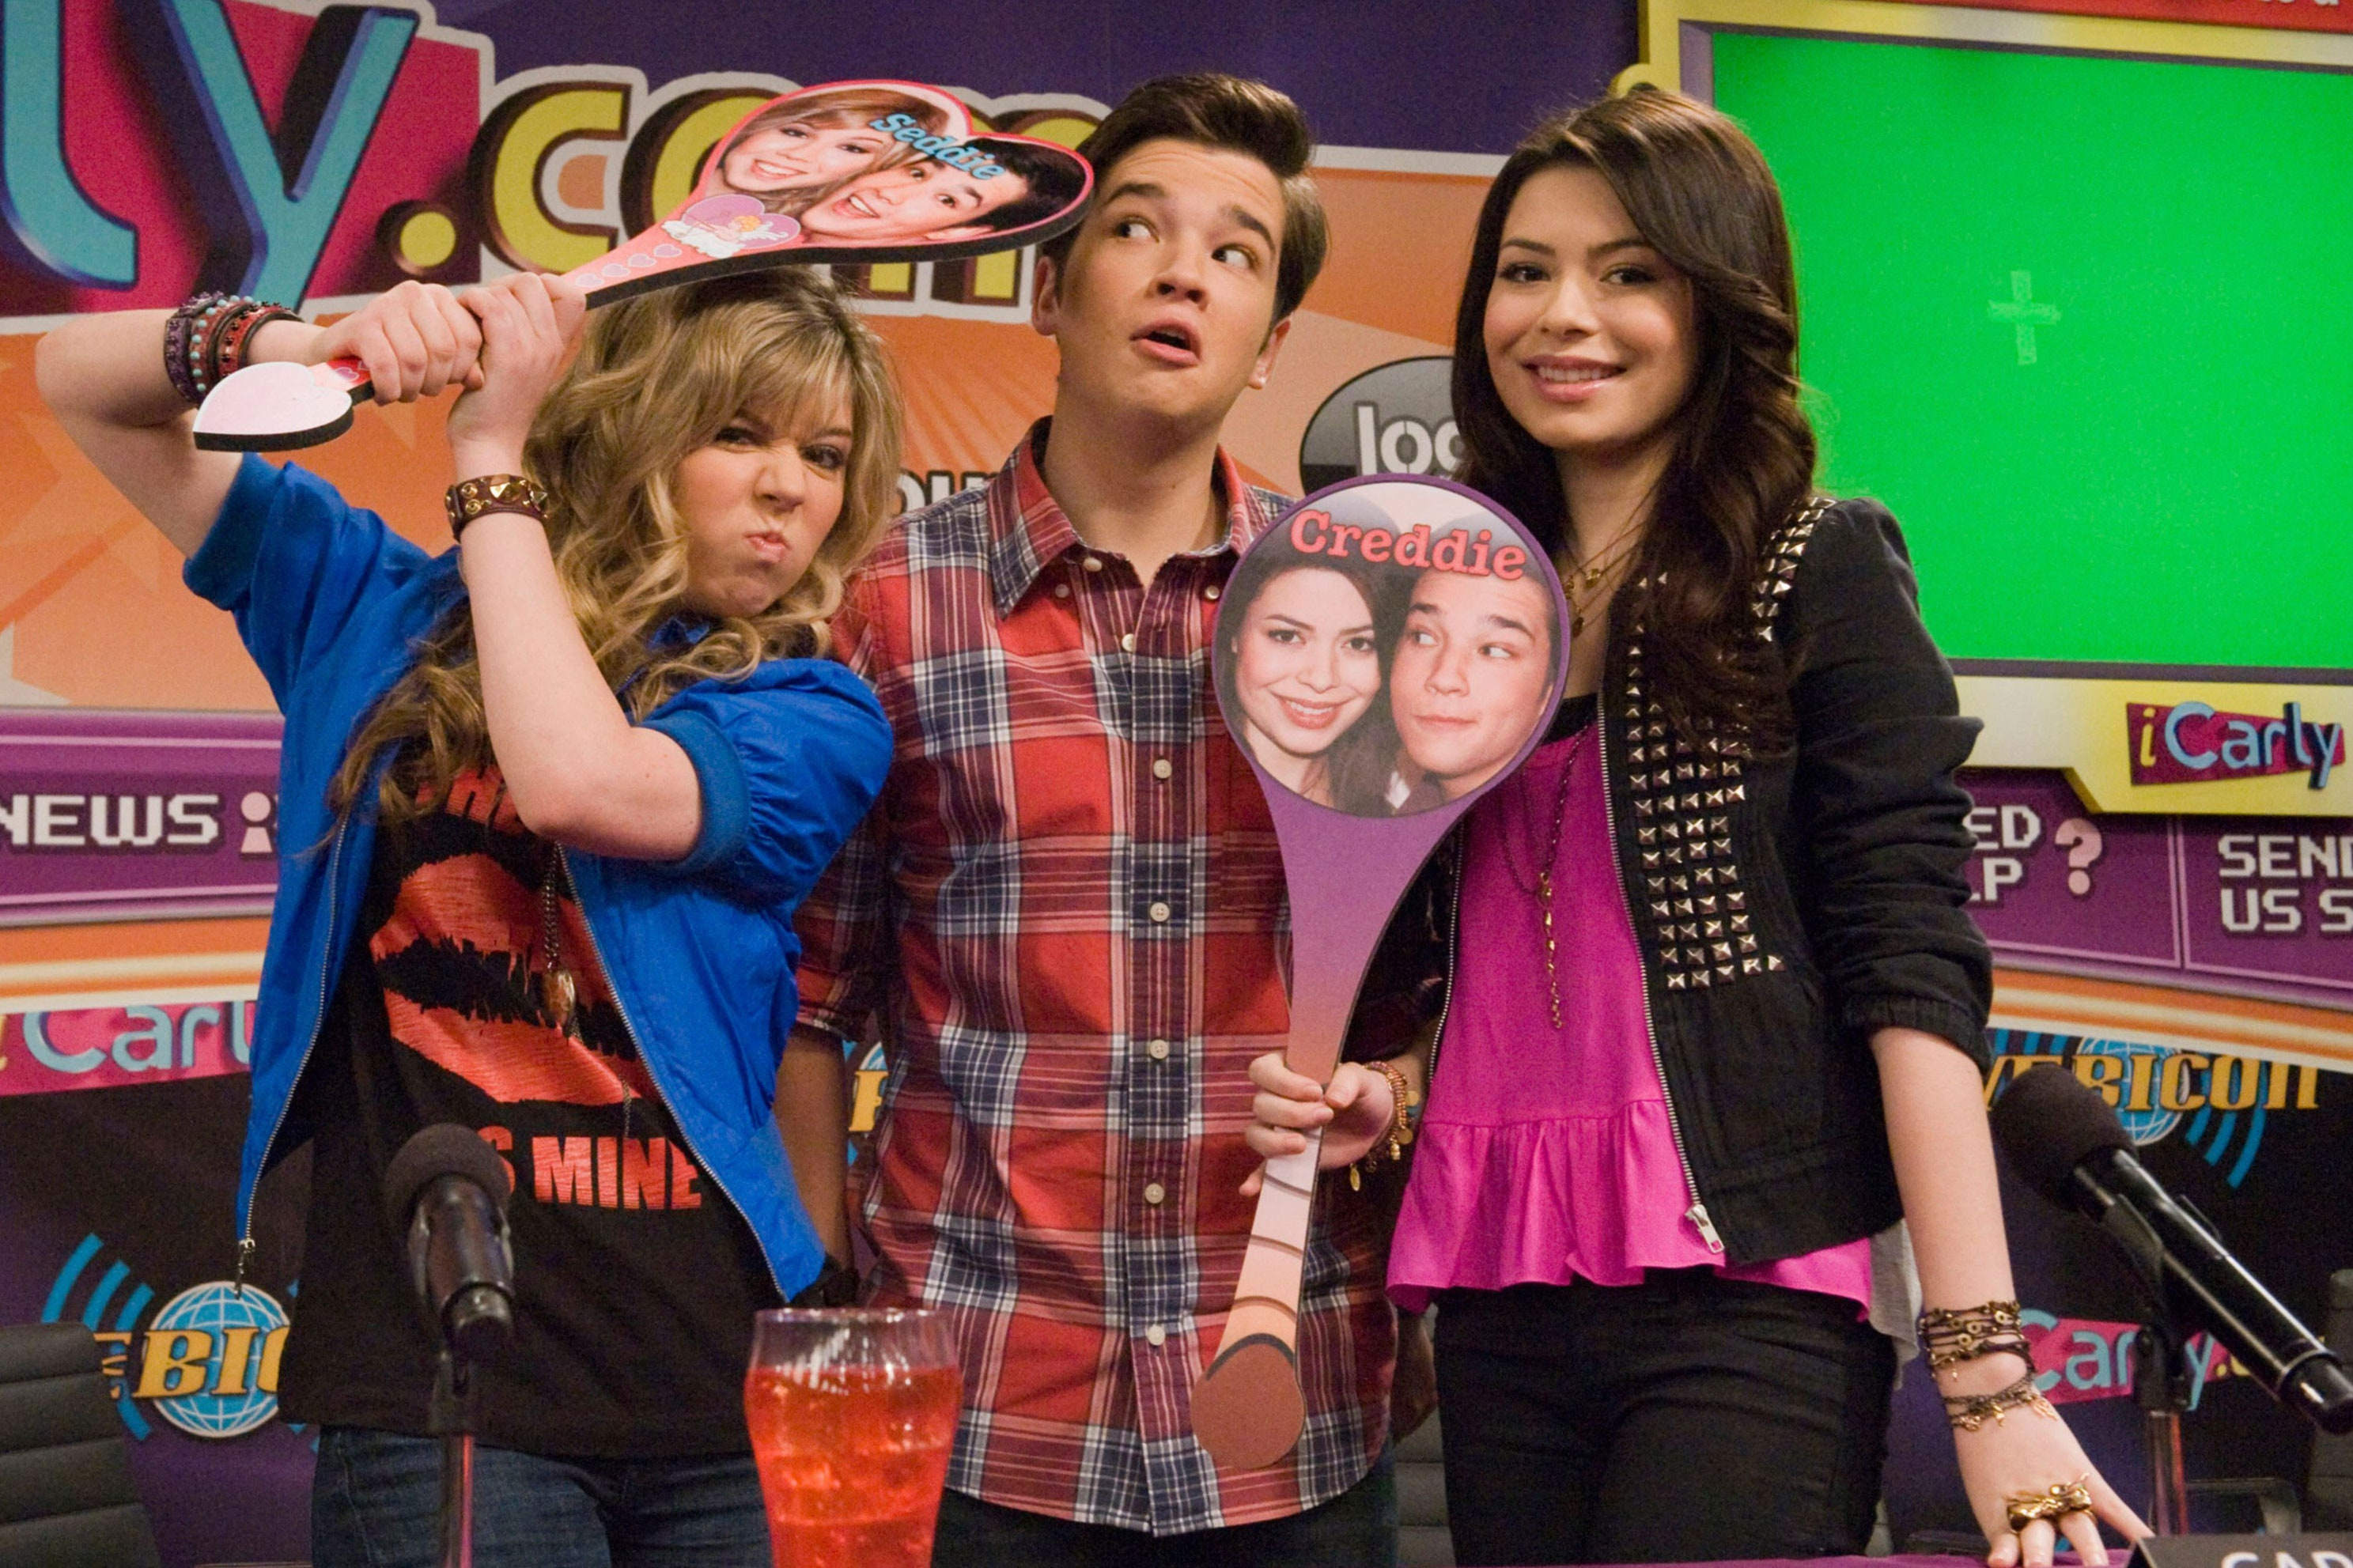 sam, freddie, and carly holding signs with their ship faces on it